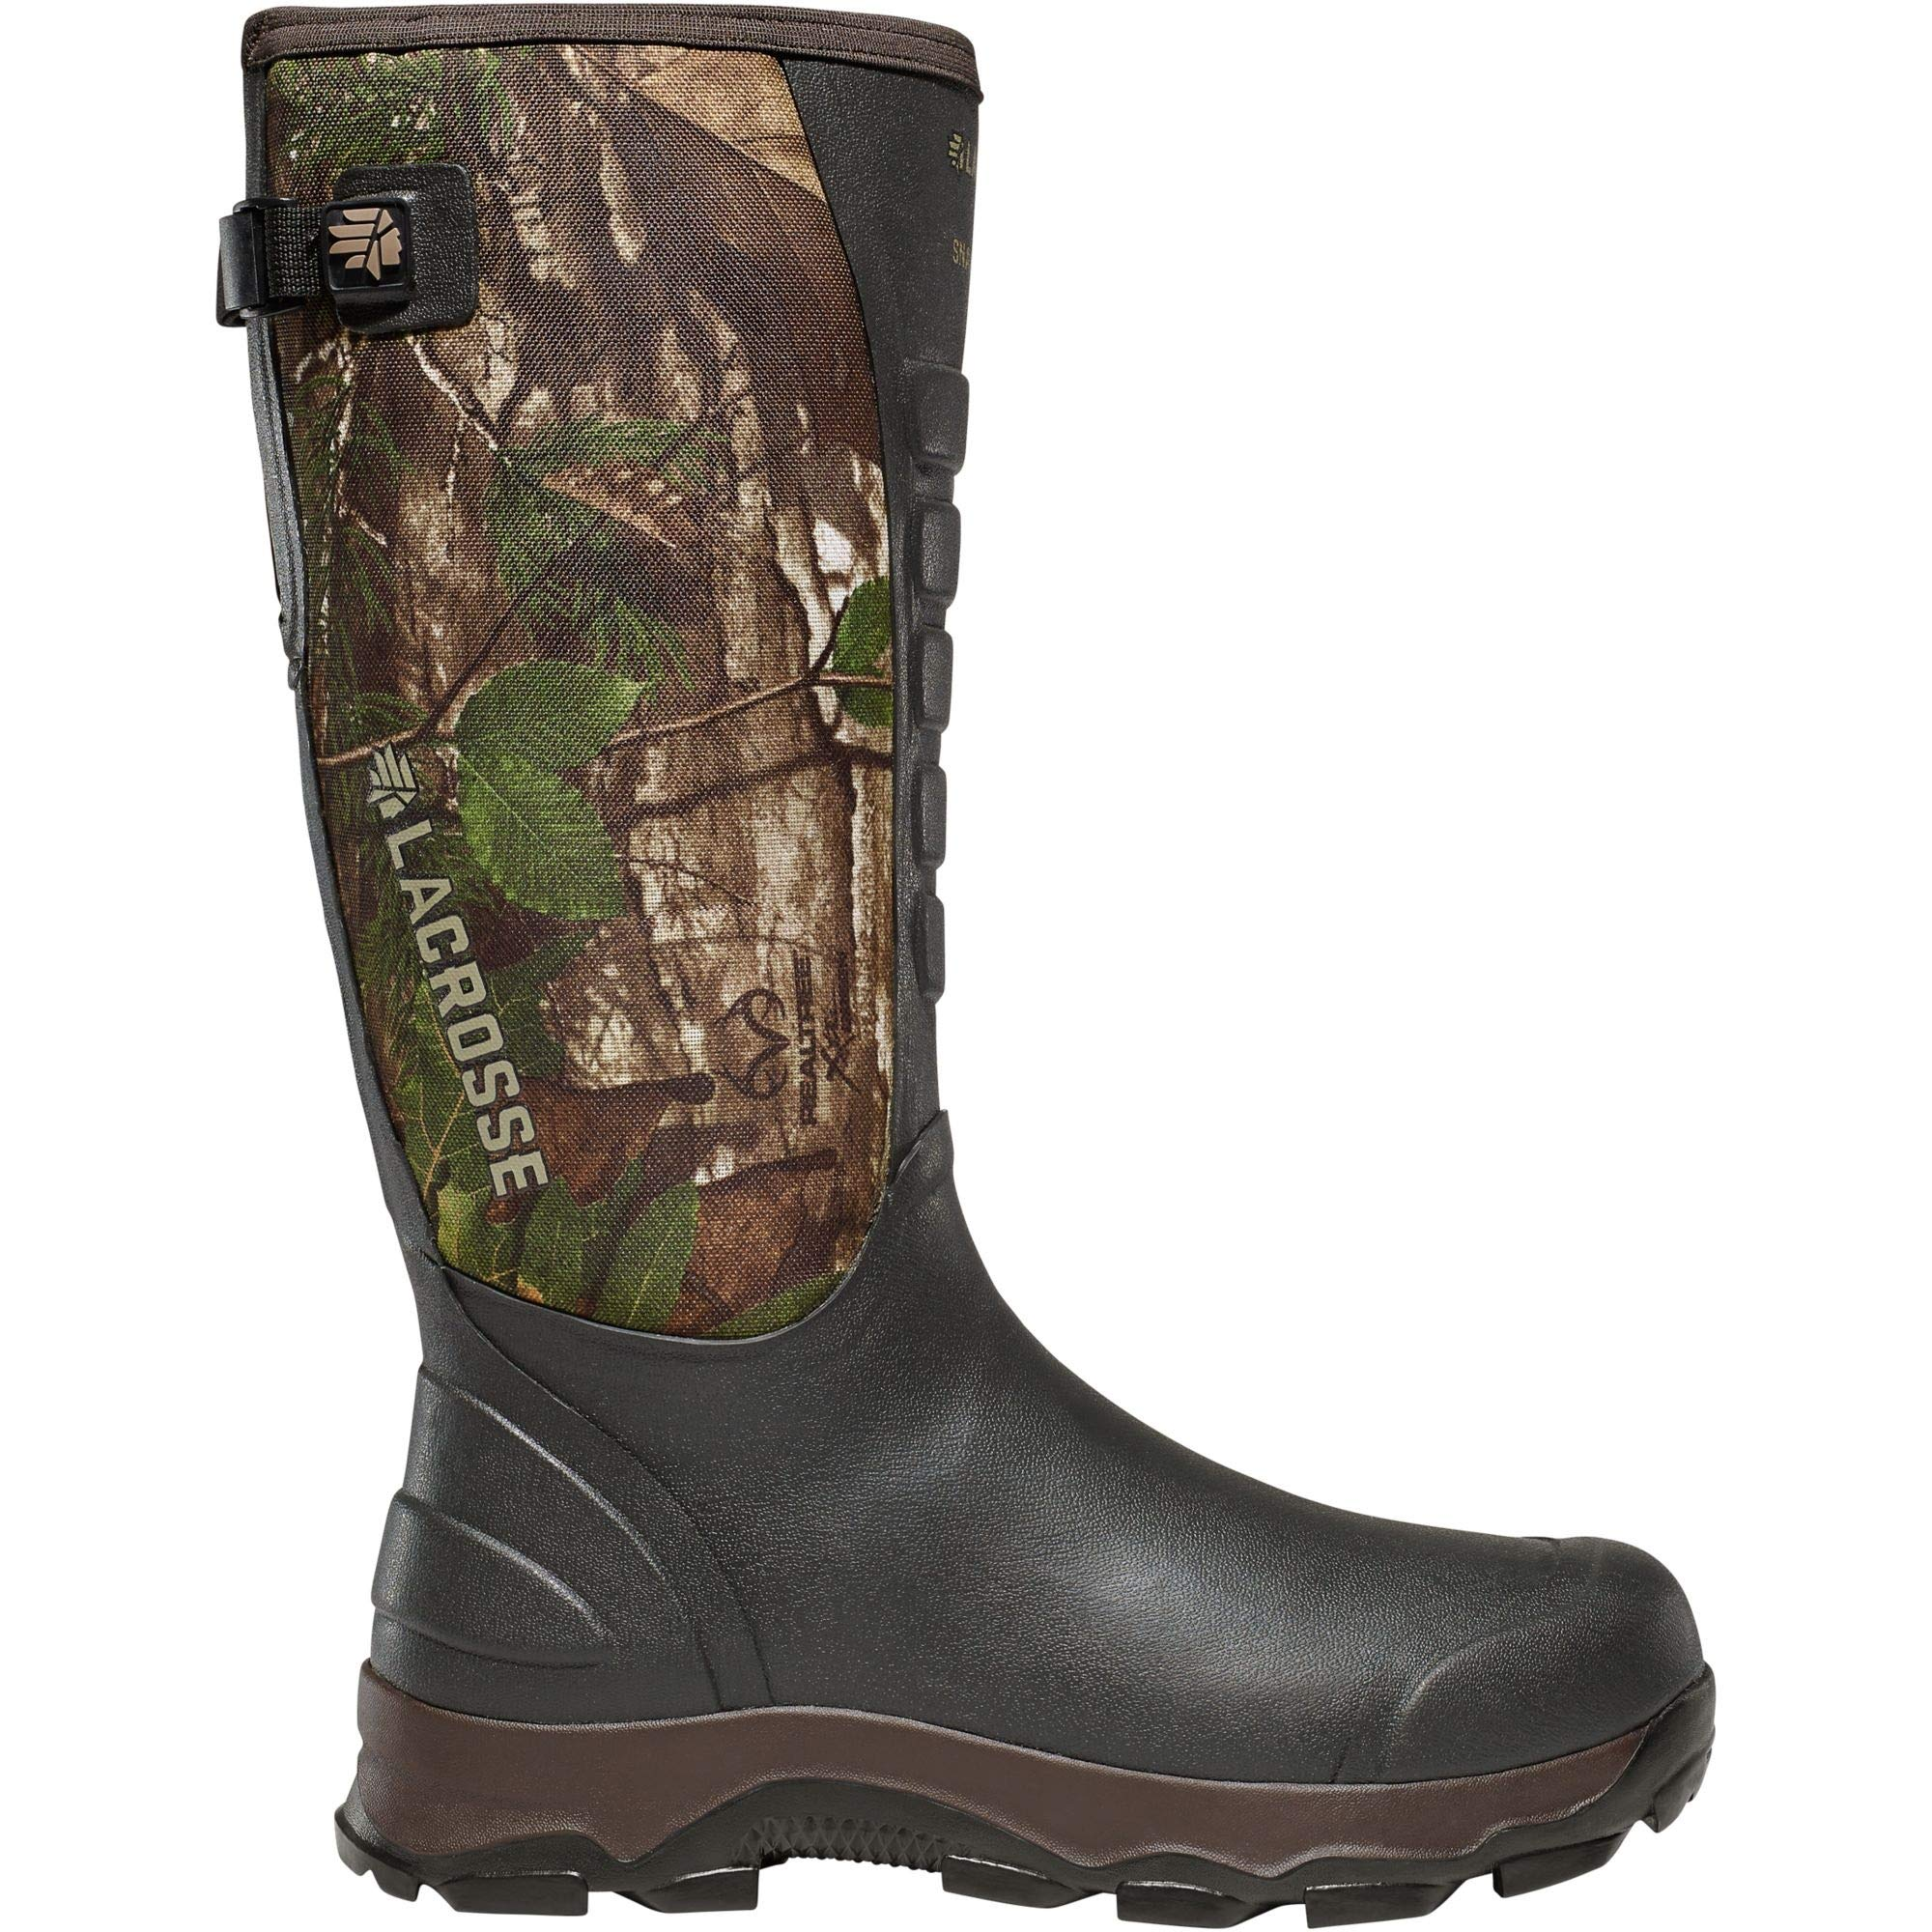 Lacrosse Men's 4X Alpha Snake Hunting Boot, Real Tree Extra Green, 6 M US